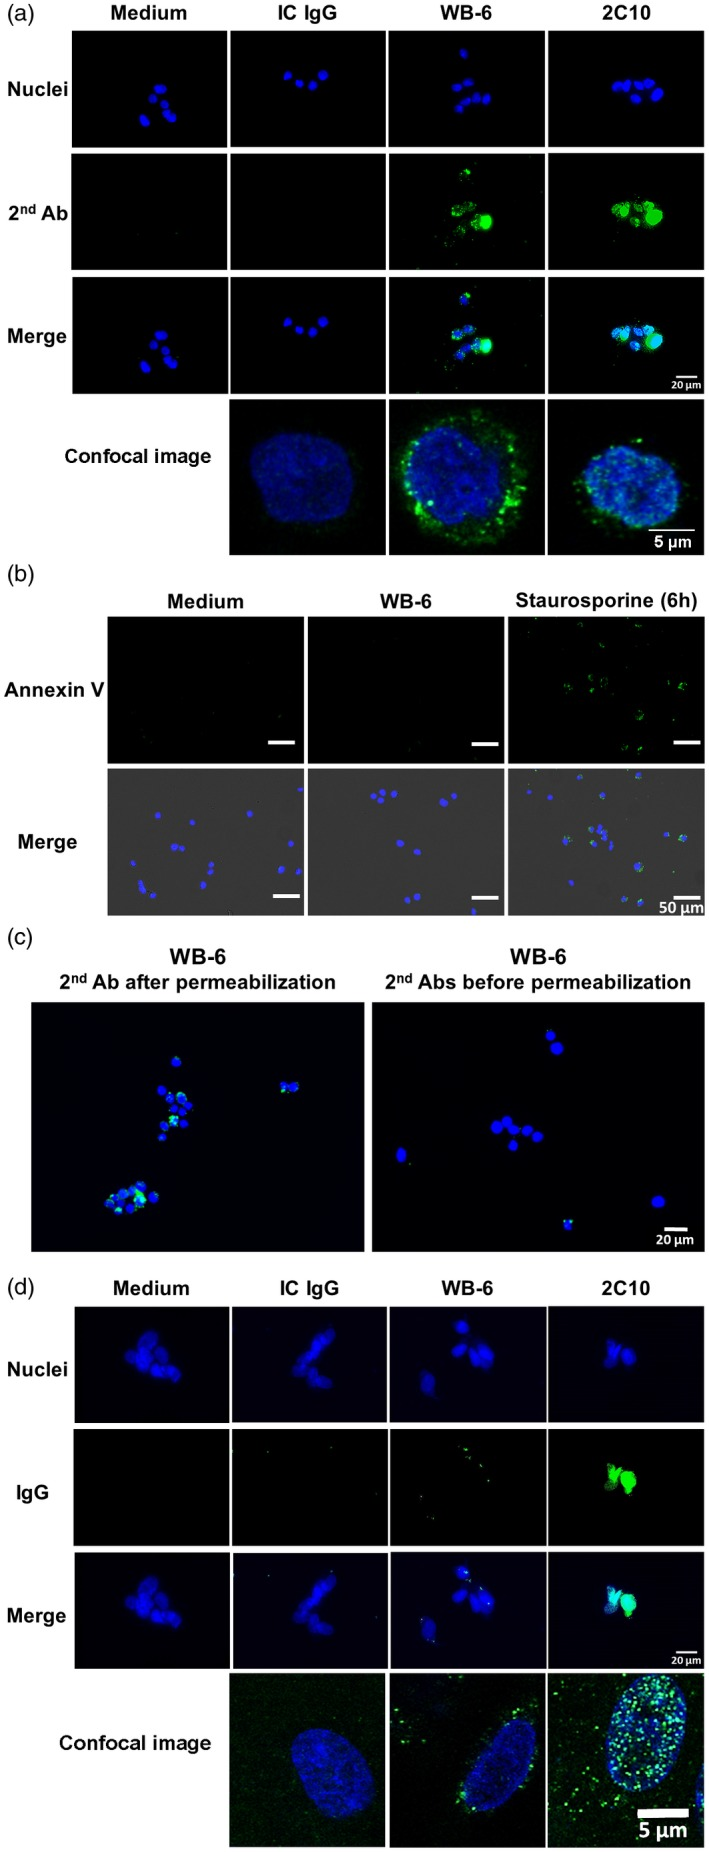 Internalization of WB‐6 into living human monocytic leukemia cell line THP‐1 cells and human umbilical vein endothelial cells (HUVECs). (a) THP‐1 cells were incubated with 25 µg/ml WB‐6, isotype‐matched control (IC) or 5 µg/ml 2C10 for 2 h. After washing, fixation, permeabilization and blocking, internalized immunoglobulin (Ig)G was detected using <t>Alexa</t> Fluor 488‐labeled goat anti‐mouse <t>IgG</t> (green). (b) THP‐1 cells were incubated with (center column) or without (left column) 25 µg/ml WB‐6 for 2 h or 1 µM staurosporine for 6 h (right column), and expression of phosphatidylserine was tested using annexin V‐biotin and fluorescein isothiocyanate (FITC)‐streptavidin (green). (c) THP‐1 cells were incubated with 25 µg/ml WB‐6 for 2 h, and Alexa Fluor 488‐labeled goat anti‐mouse IgG (green) was added after (left) or before (right) fixation and permeabilization. (d) Internalization of WB‐6 into HUVECs was tested according to the same protocol as (a). In all experiments, the nuclei were stained with Hoechst 33342 (blue). A representative of three independent experiments with similar results is shown.